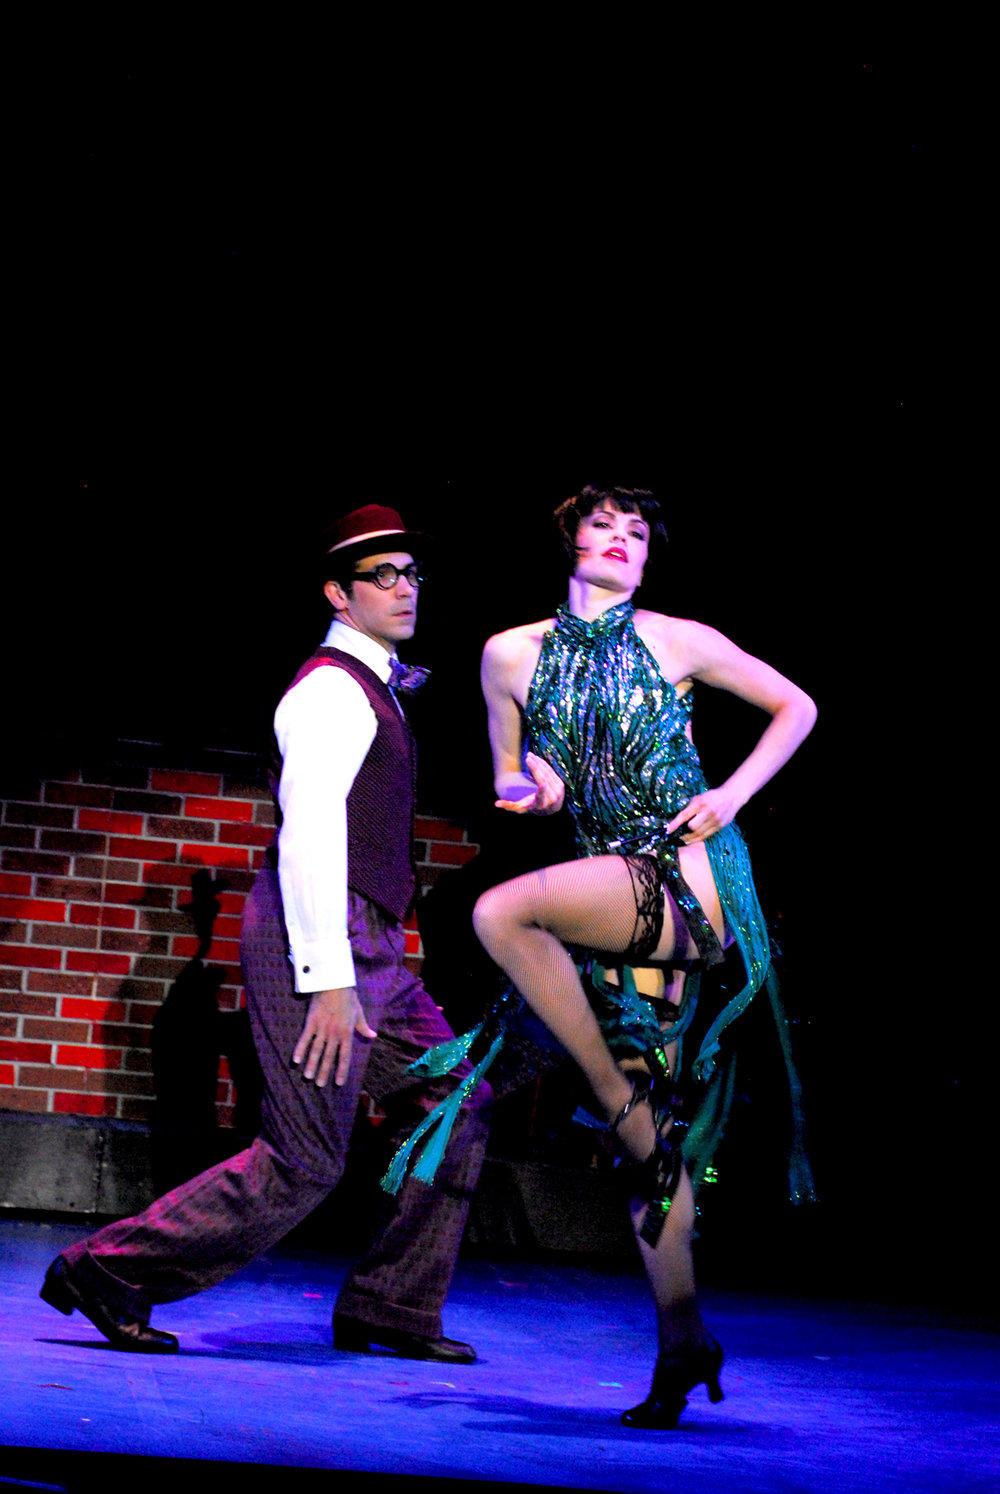 2009_SITR_Joey-Sorge_Mahri-Relin_Broadway-Rhythm_photo-by-Gary-Ng.jpg